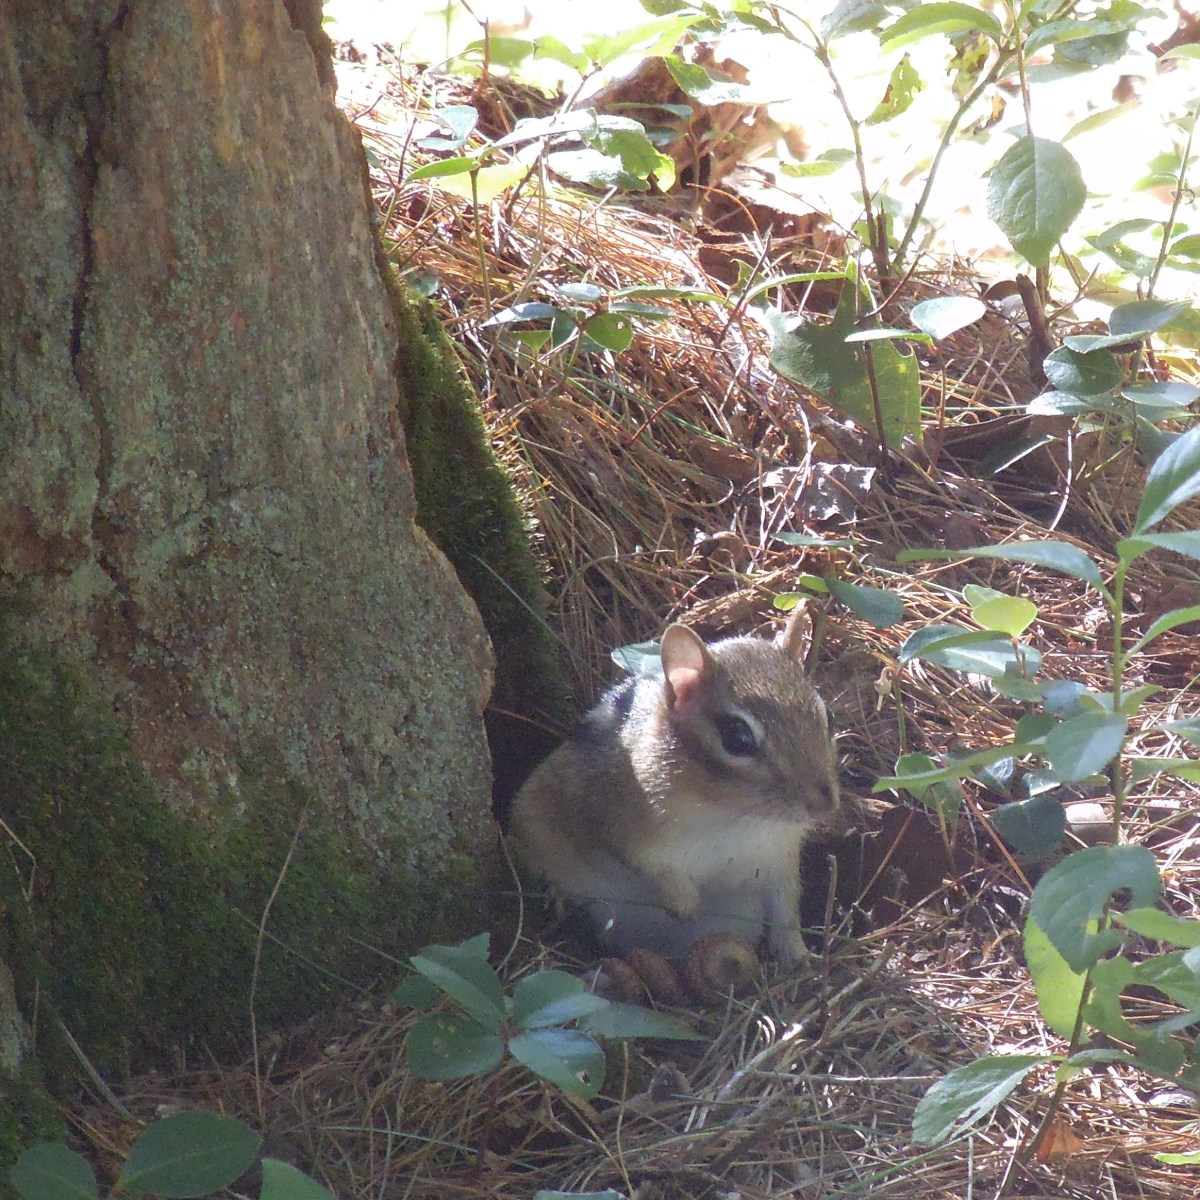 Chipmunk next to his home. Notice the opening in the tree stump next to him.